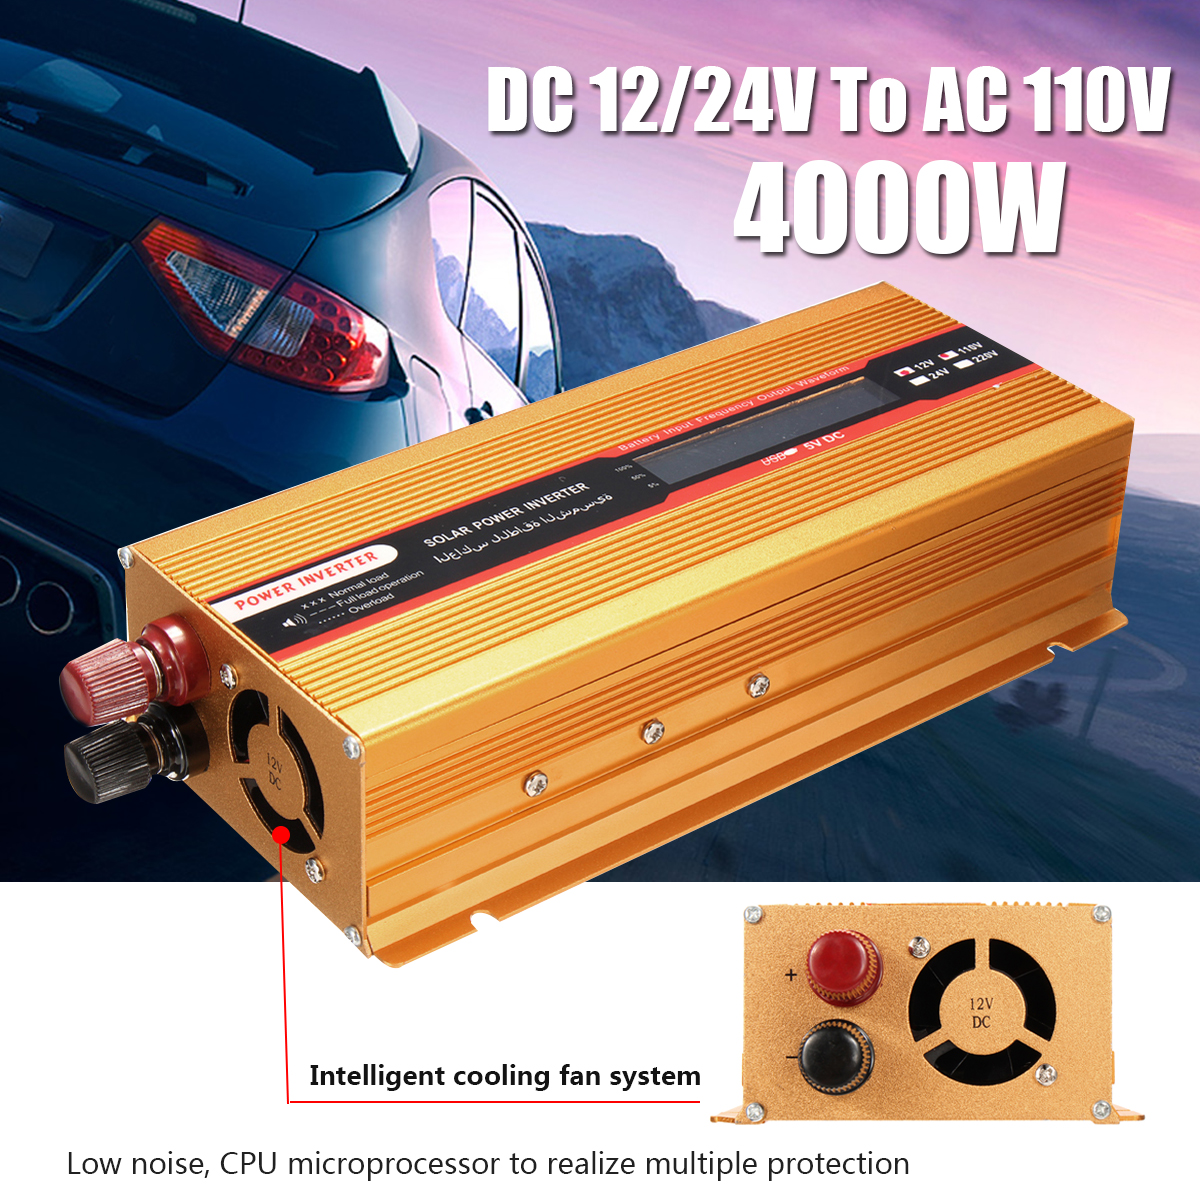 PEAK 4000W 12/24V To AC 220/110V Car Power Inverter USB Modified Sine Wave Converter Voltage Transformer for Various Appliances peak 4000w 12 24v to ac 220 110v car power inverter usb modified sine wave converter voltage transformer for various appliances